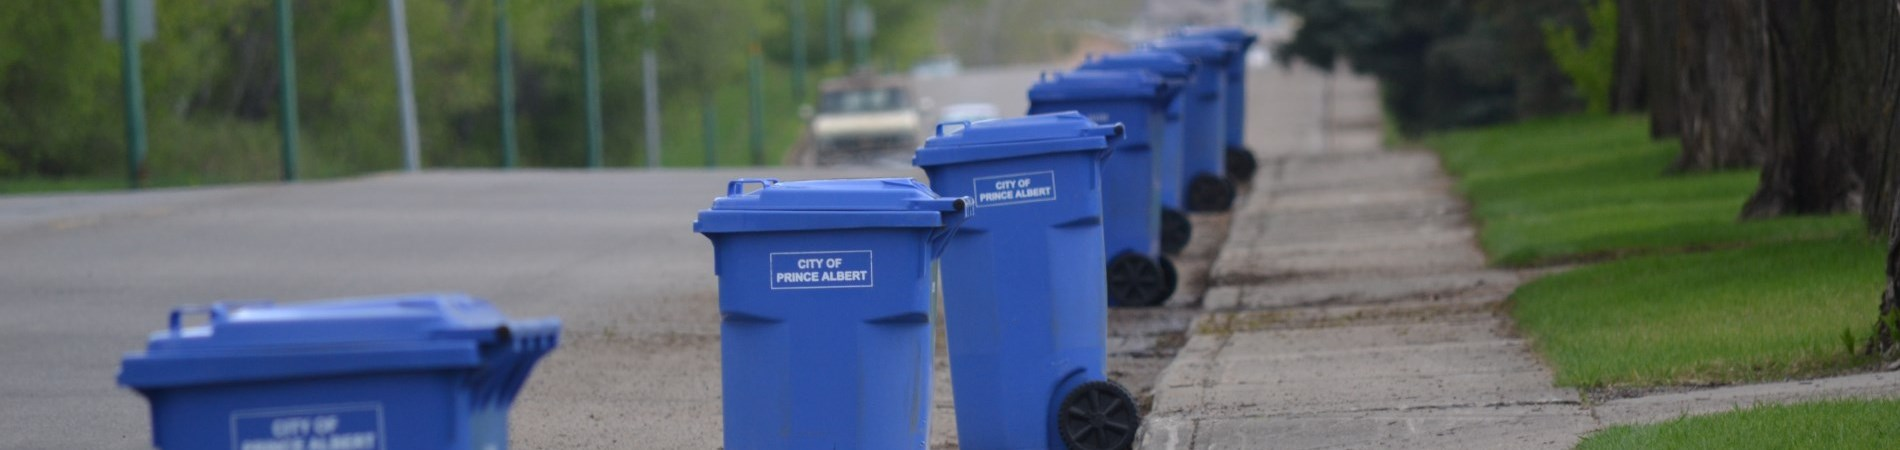 Recycling bins placed for collection